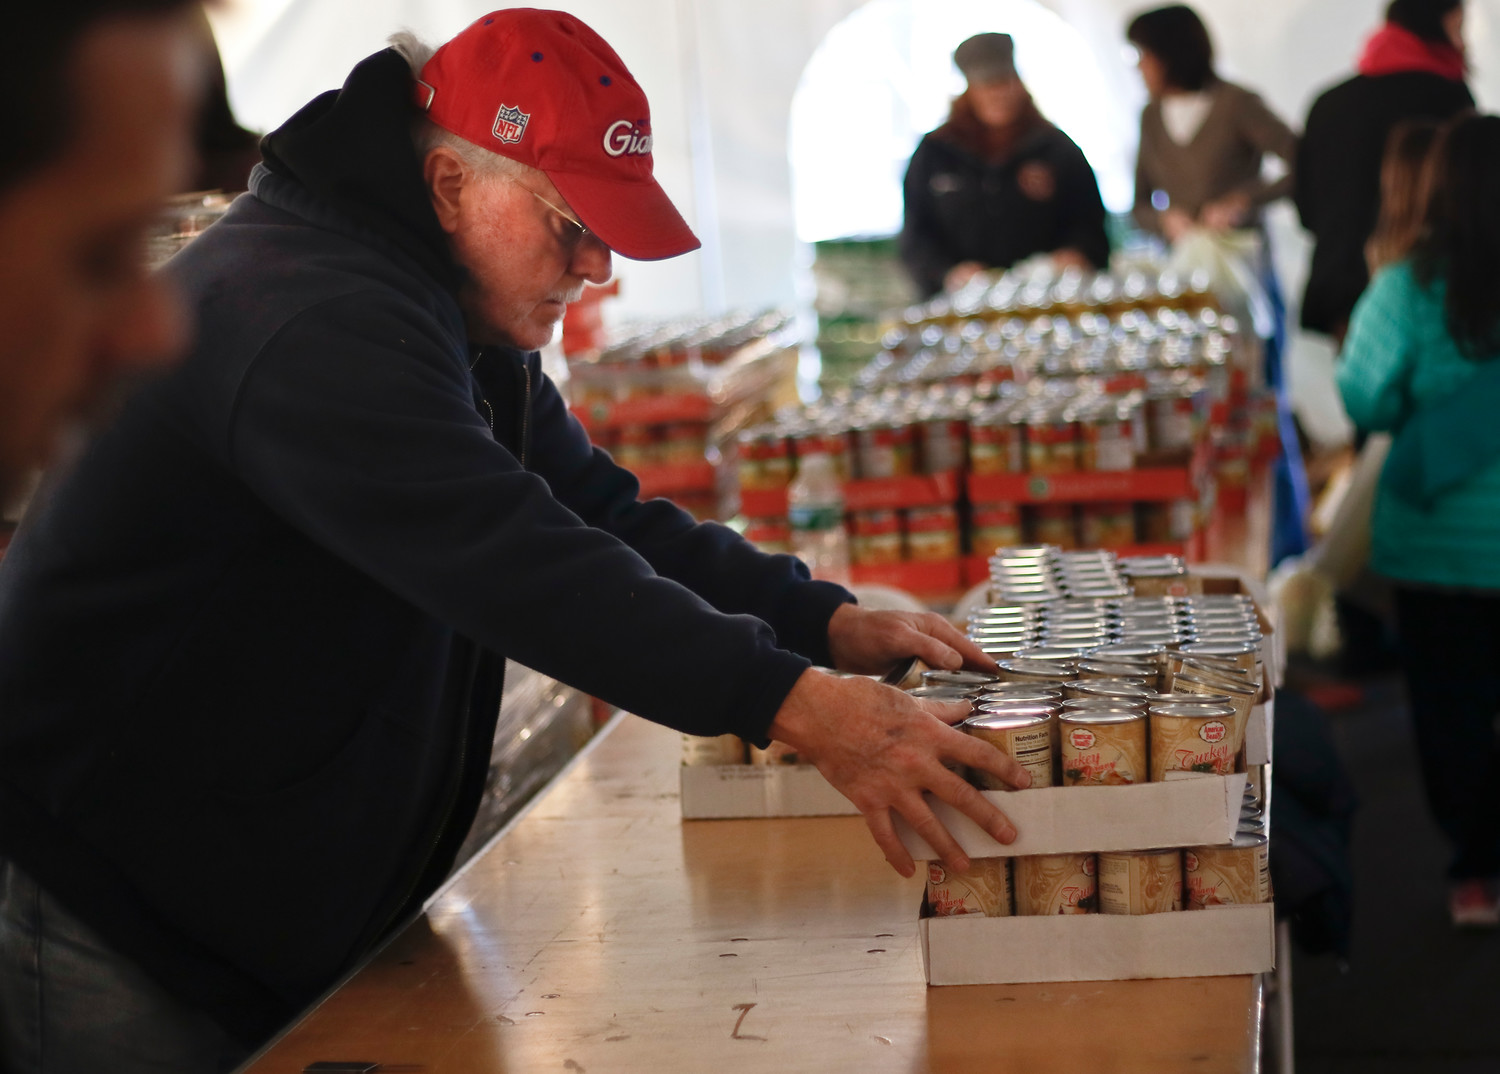 As the supplies got lower, Rockville Centre's Steve Ehrling stacked up new cases of gravy.